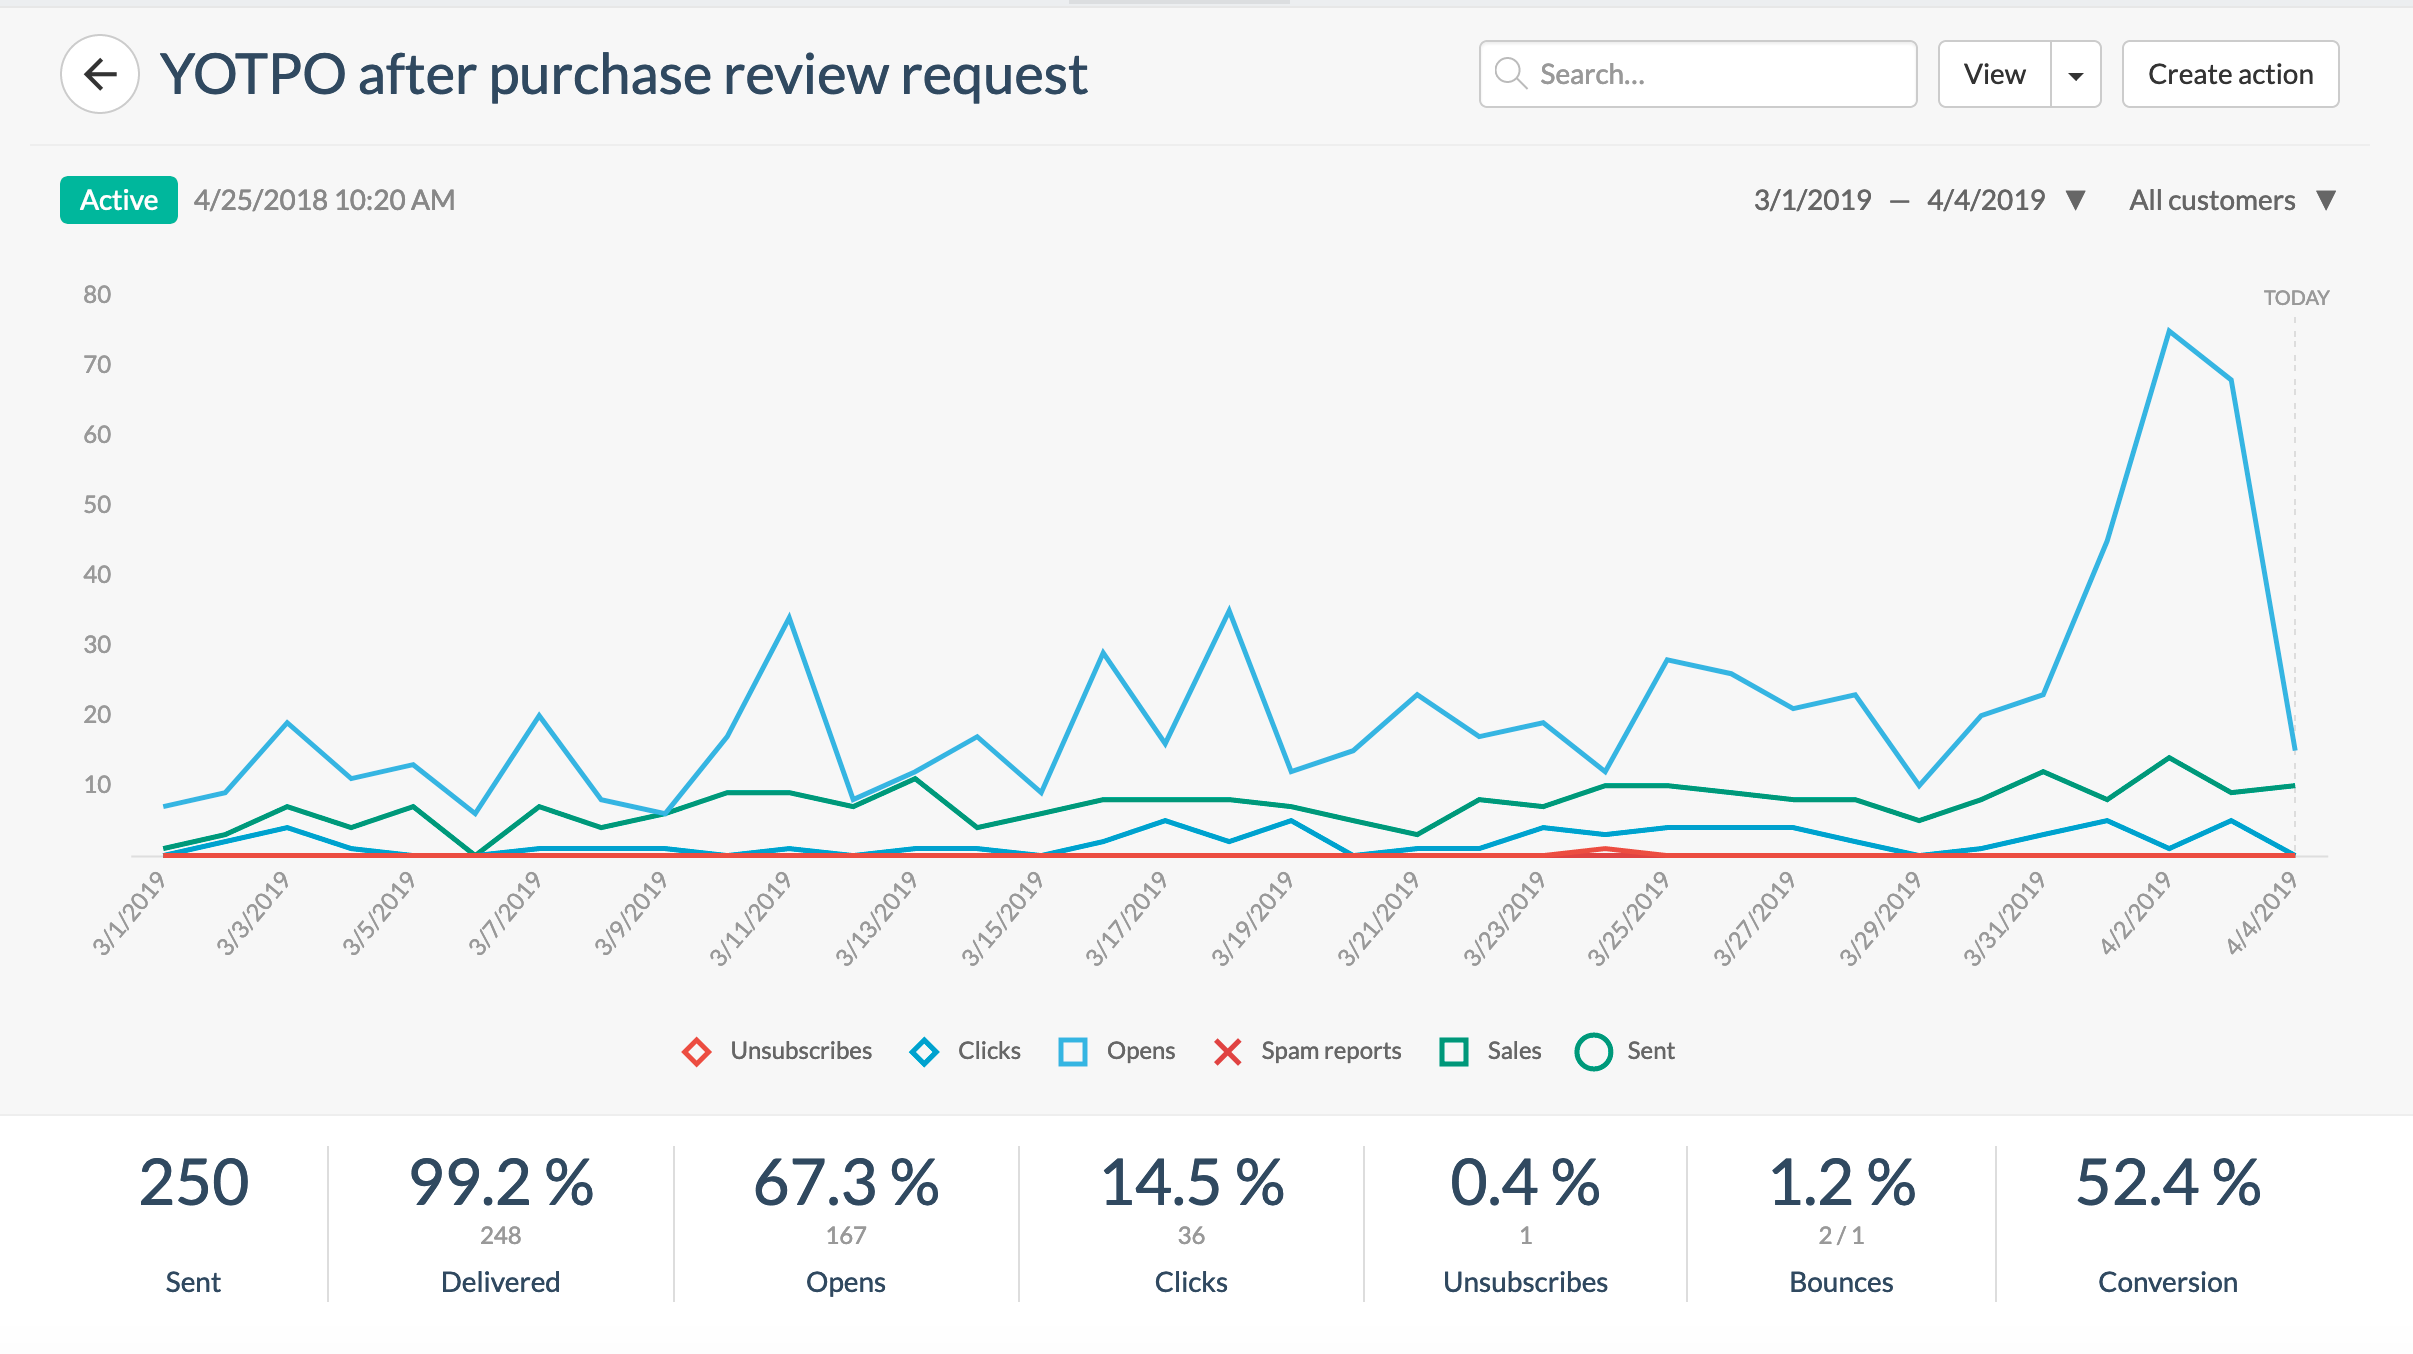 After purchase product review request automation